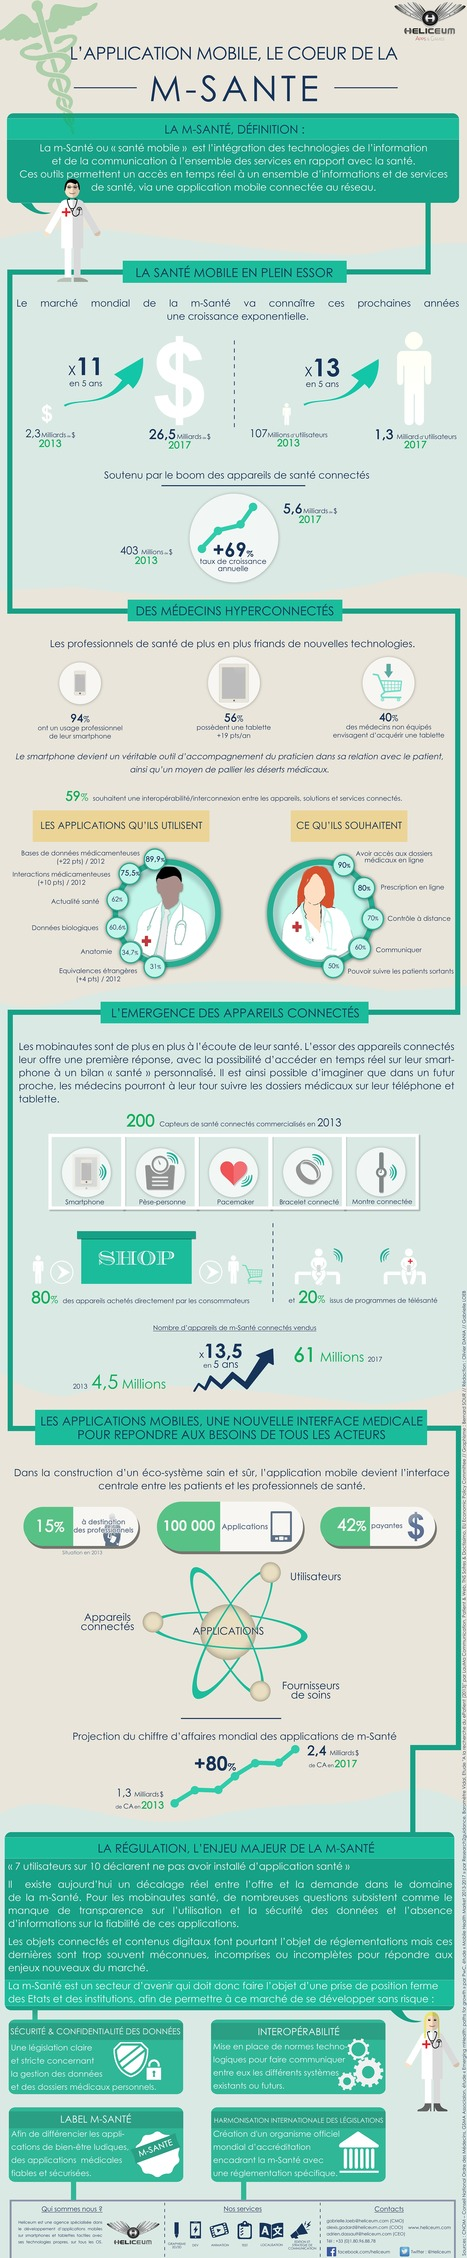 Infographie : l'#application mobile au coeur de la #msanté | E-santé | Scoop.it